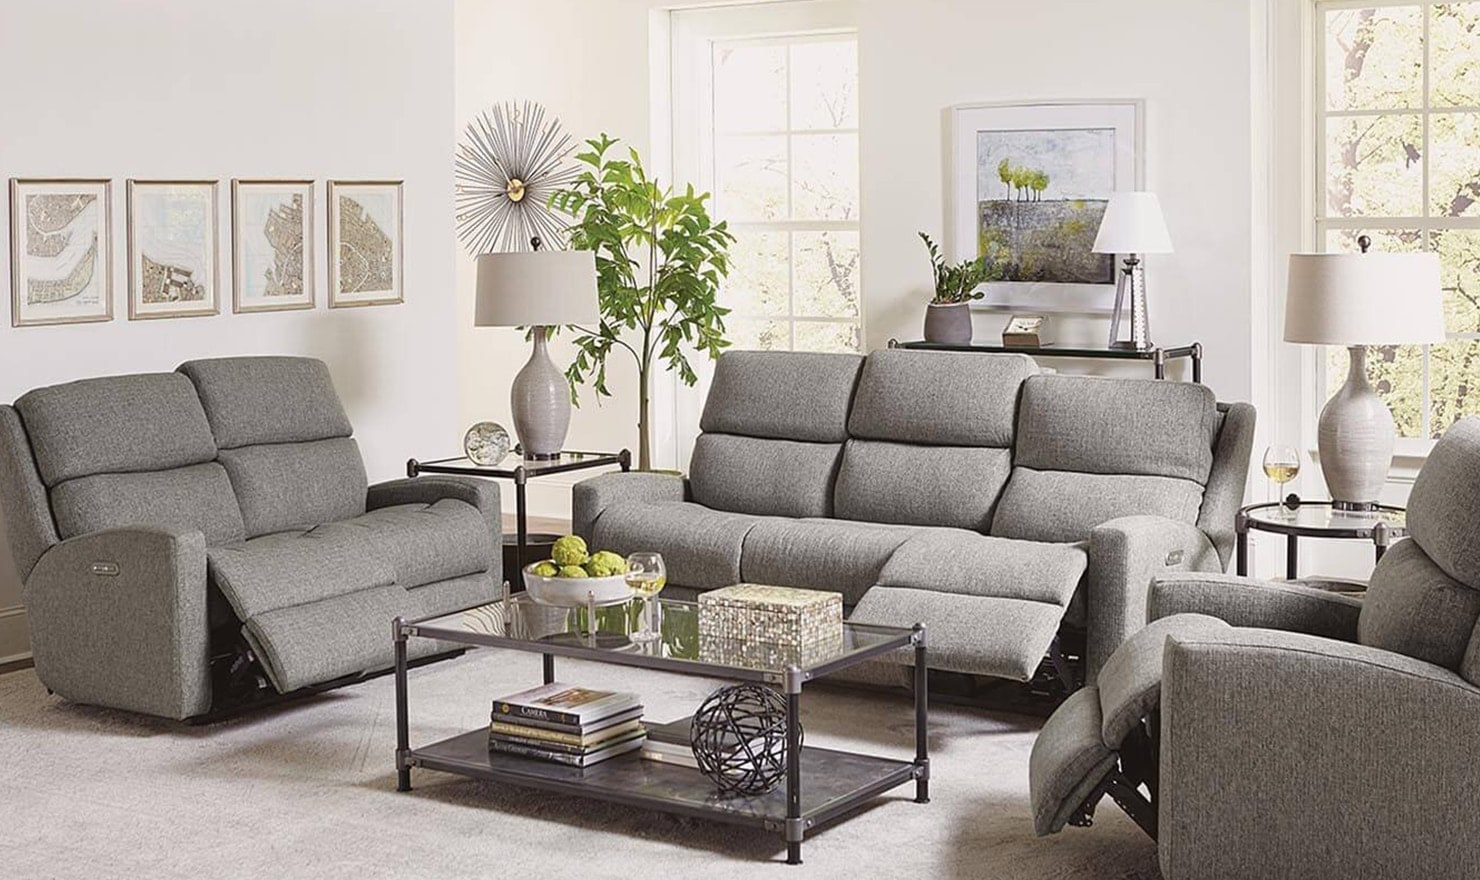 Recliners in living room